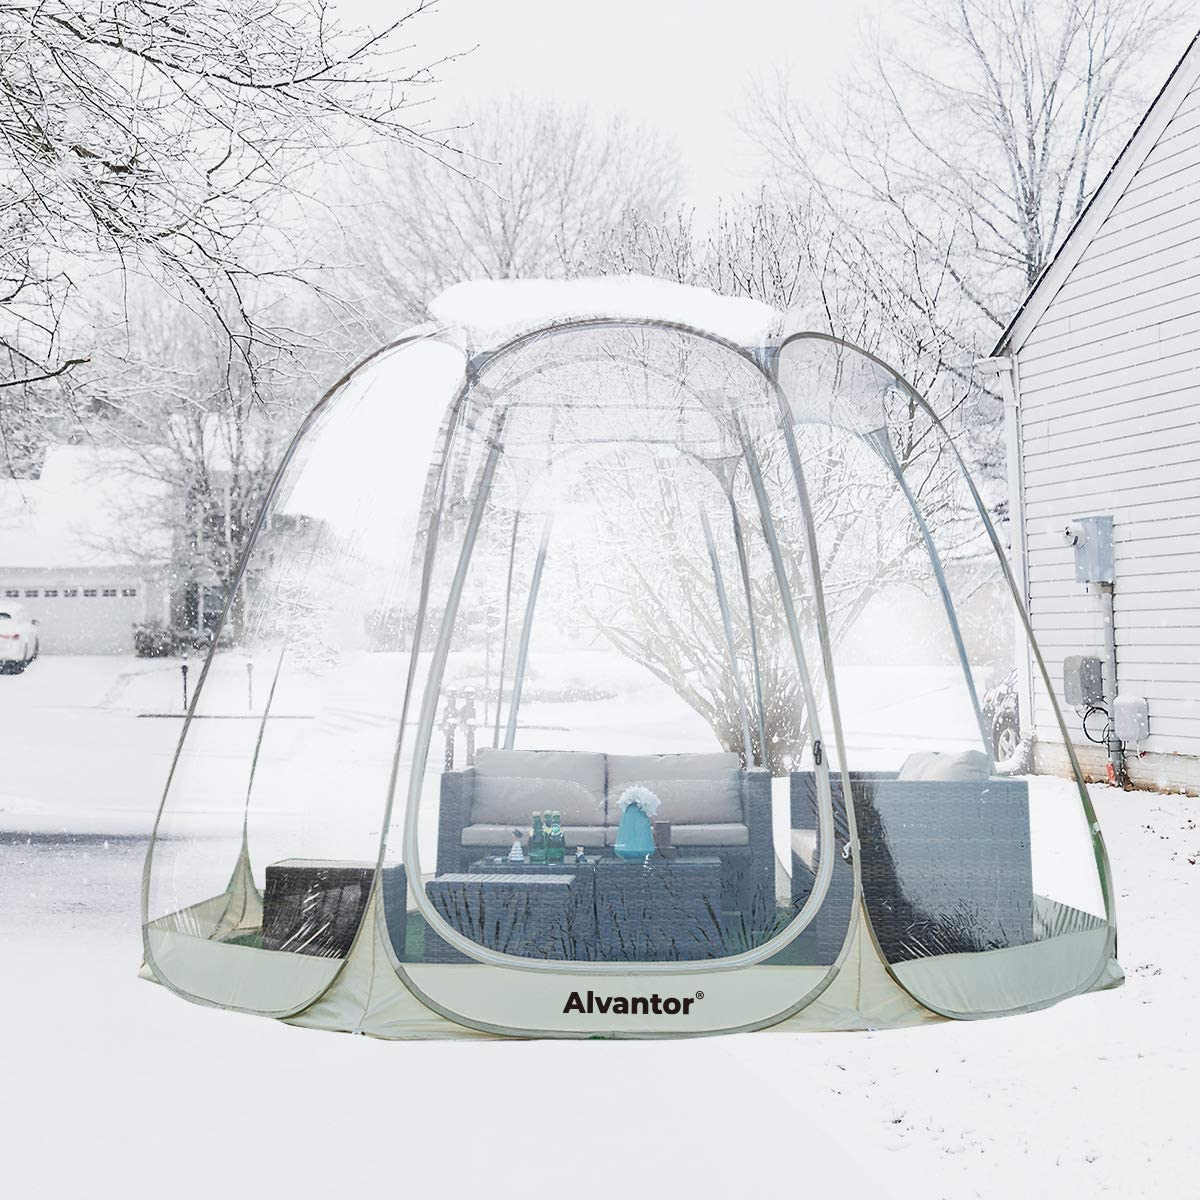 Alvantor Winter Screen House Room Camping Tent Canopy Gazebos 8-10 Person for Patios, Large Oversize Weather Pod, Premium Greenhouse Instant Pop Up Tent, Snow and Rain Protection Beige 12 12